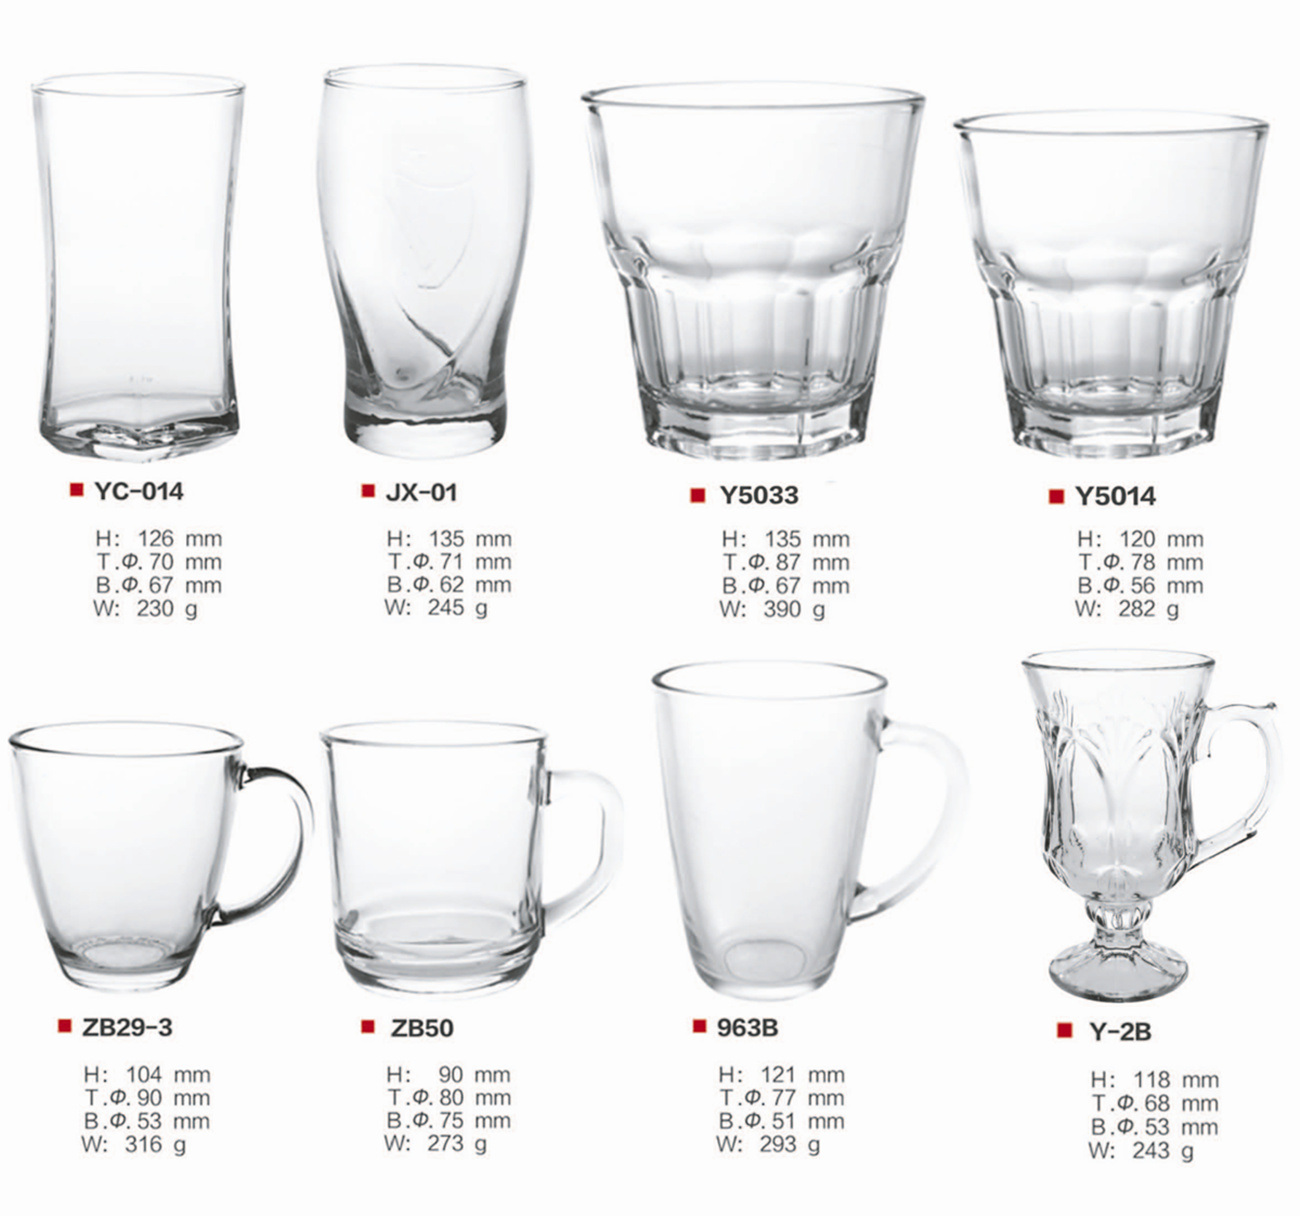 Glassware / Mug / Tumbler / Beer Glass / Drinking Glass